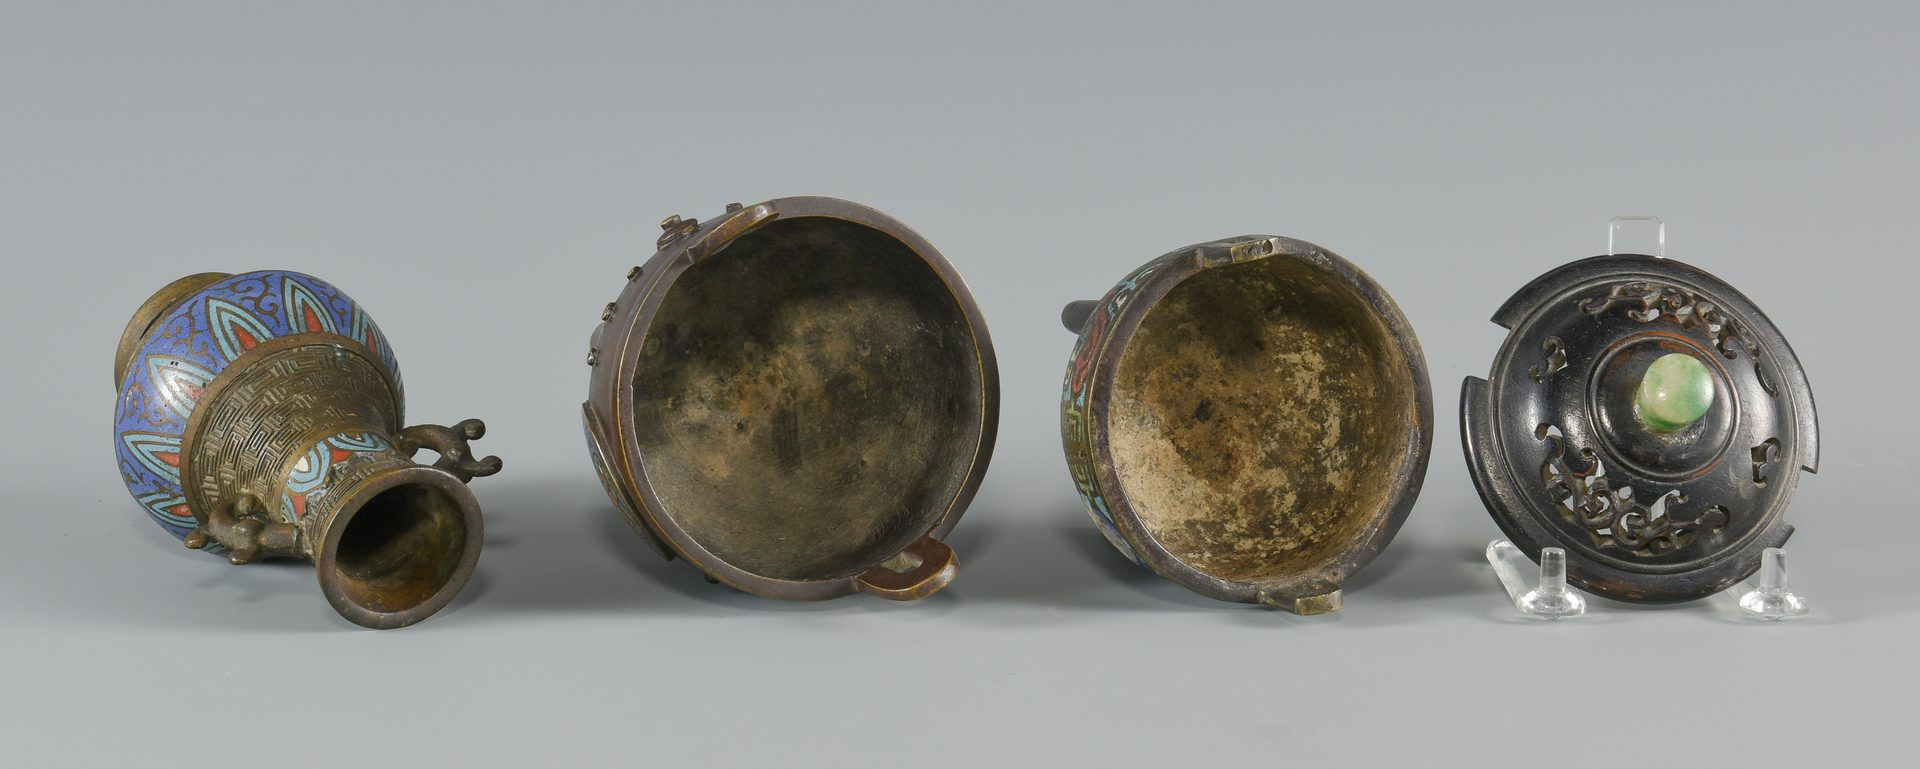 Lot 254: 3 Asian Bronze & Champleve Items